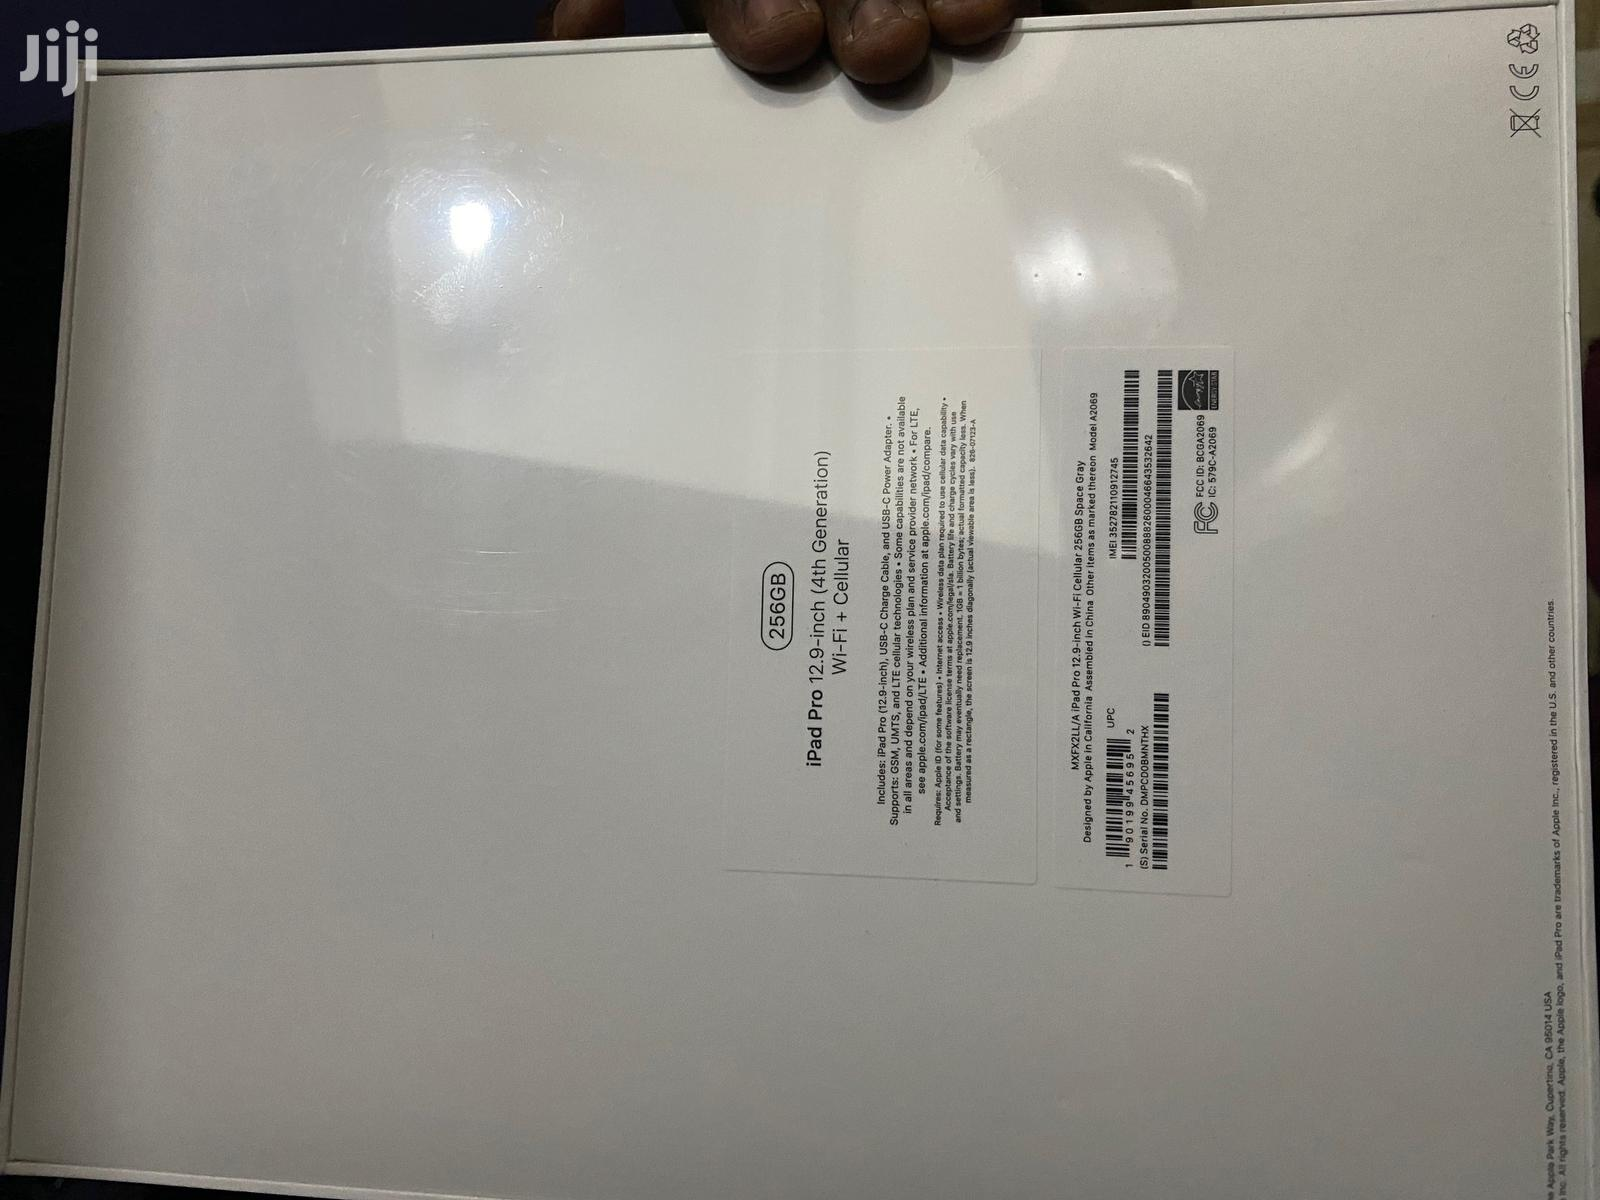 New Apple iPad Pro 12.9 256 GB Black | Tablets for sale in East Legon, Greater Accra, Ghana